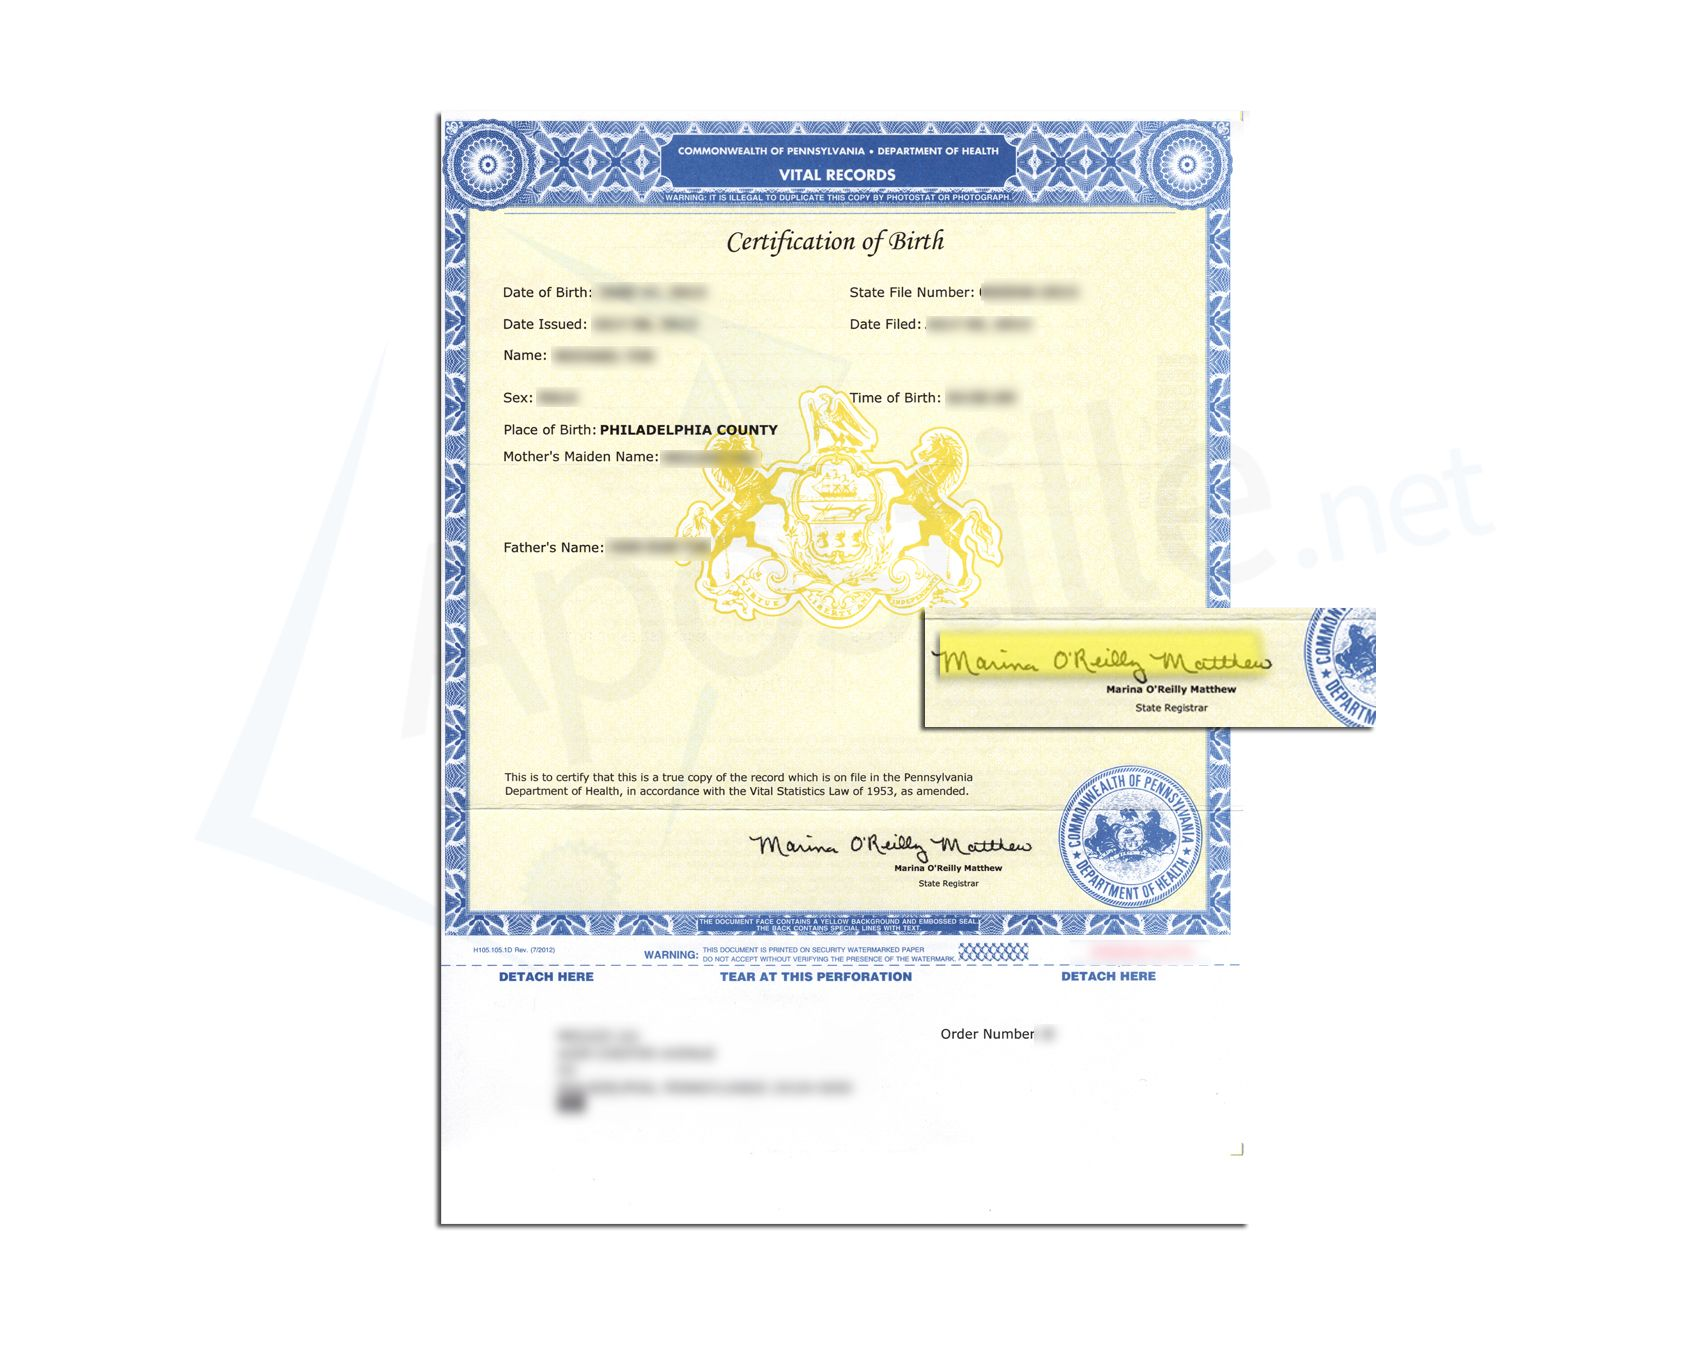 State of pennsylvania certification of birth issued by marina o state of pennsylvania certification of birth issued by marina oreilly matthew state registrar aiddatafo Images